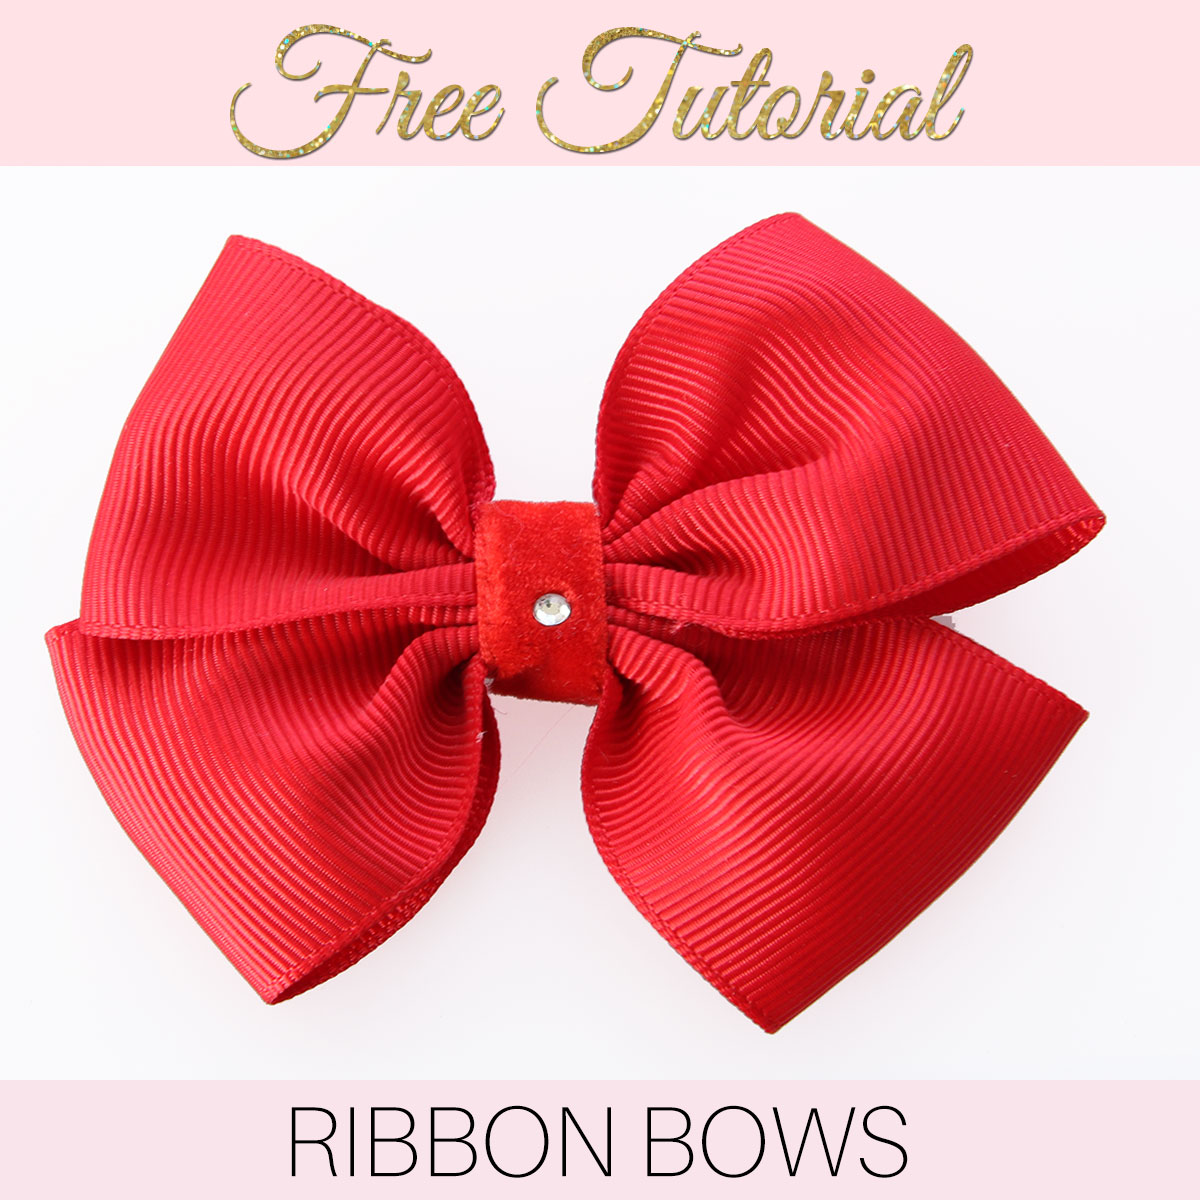 How To Make A Two Story Living Room Cozy: How To Make A Ribbon Bow: EASY Double Bow